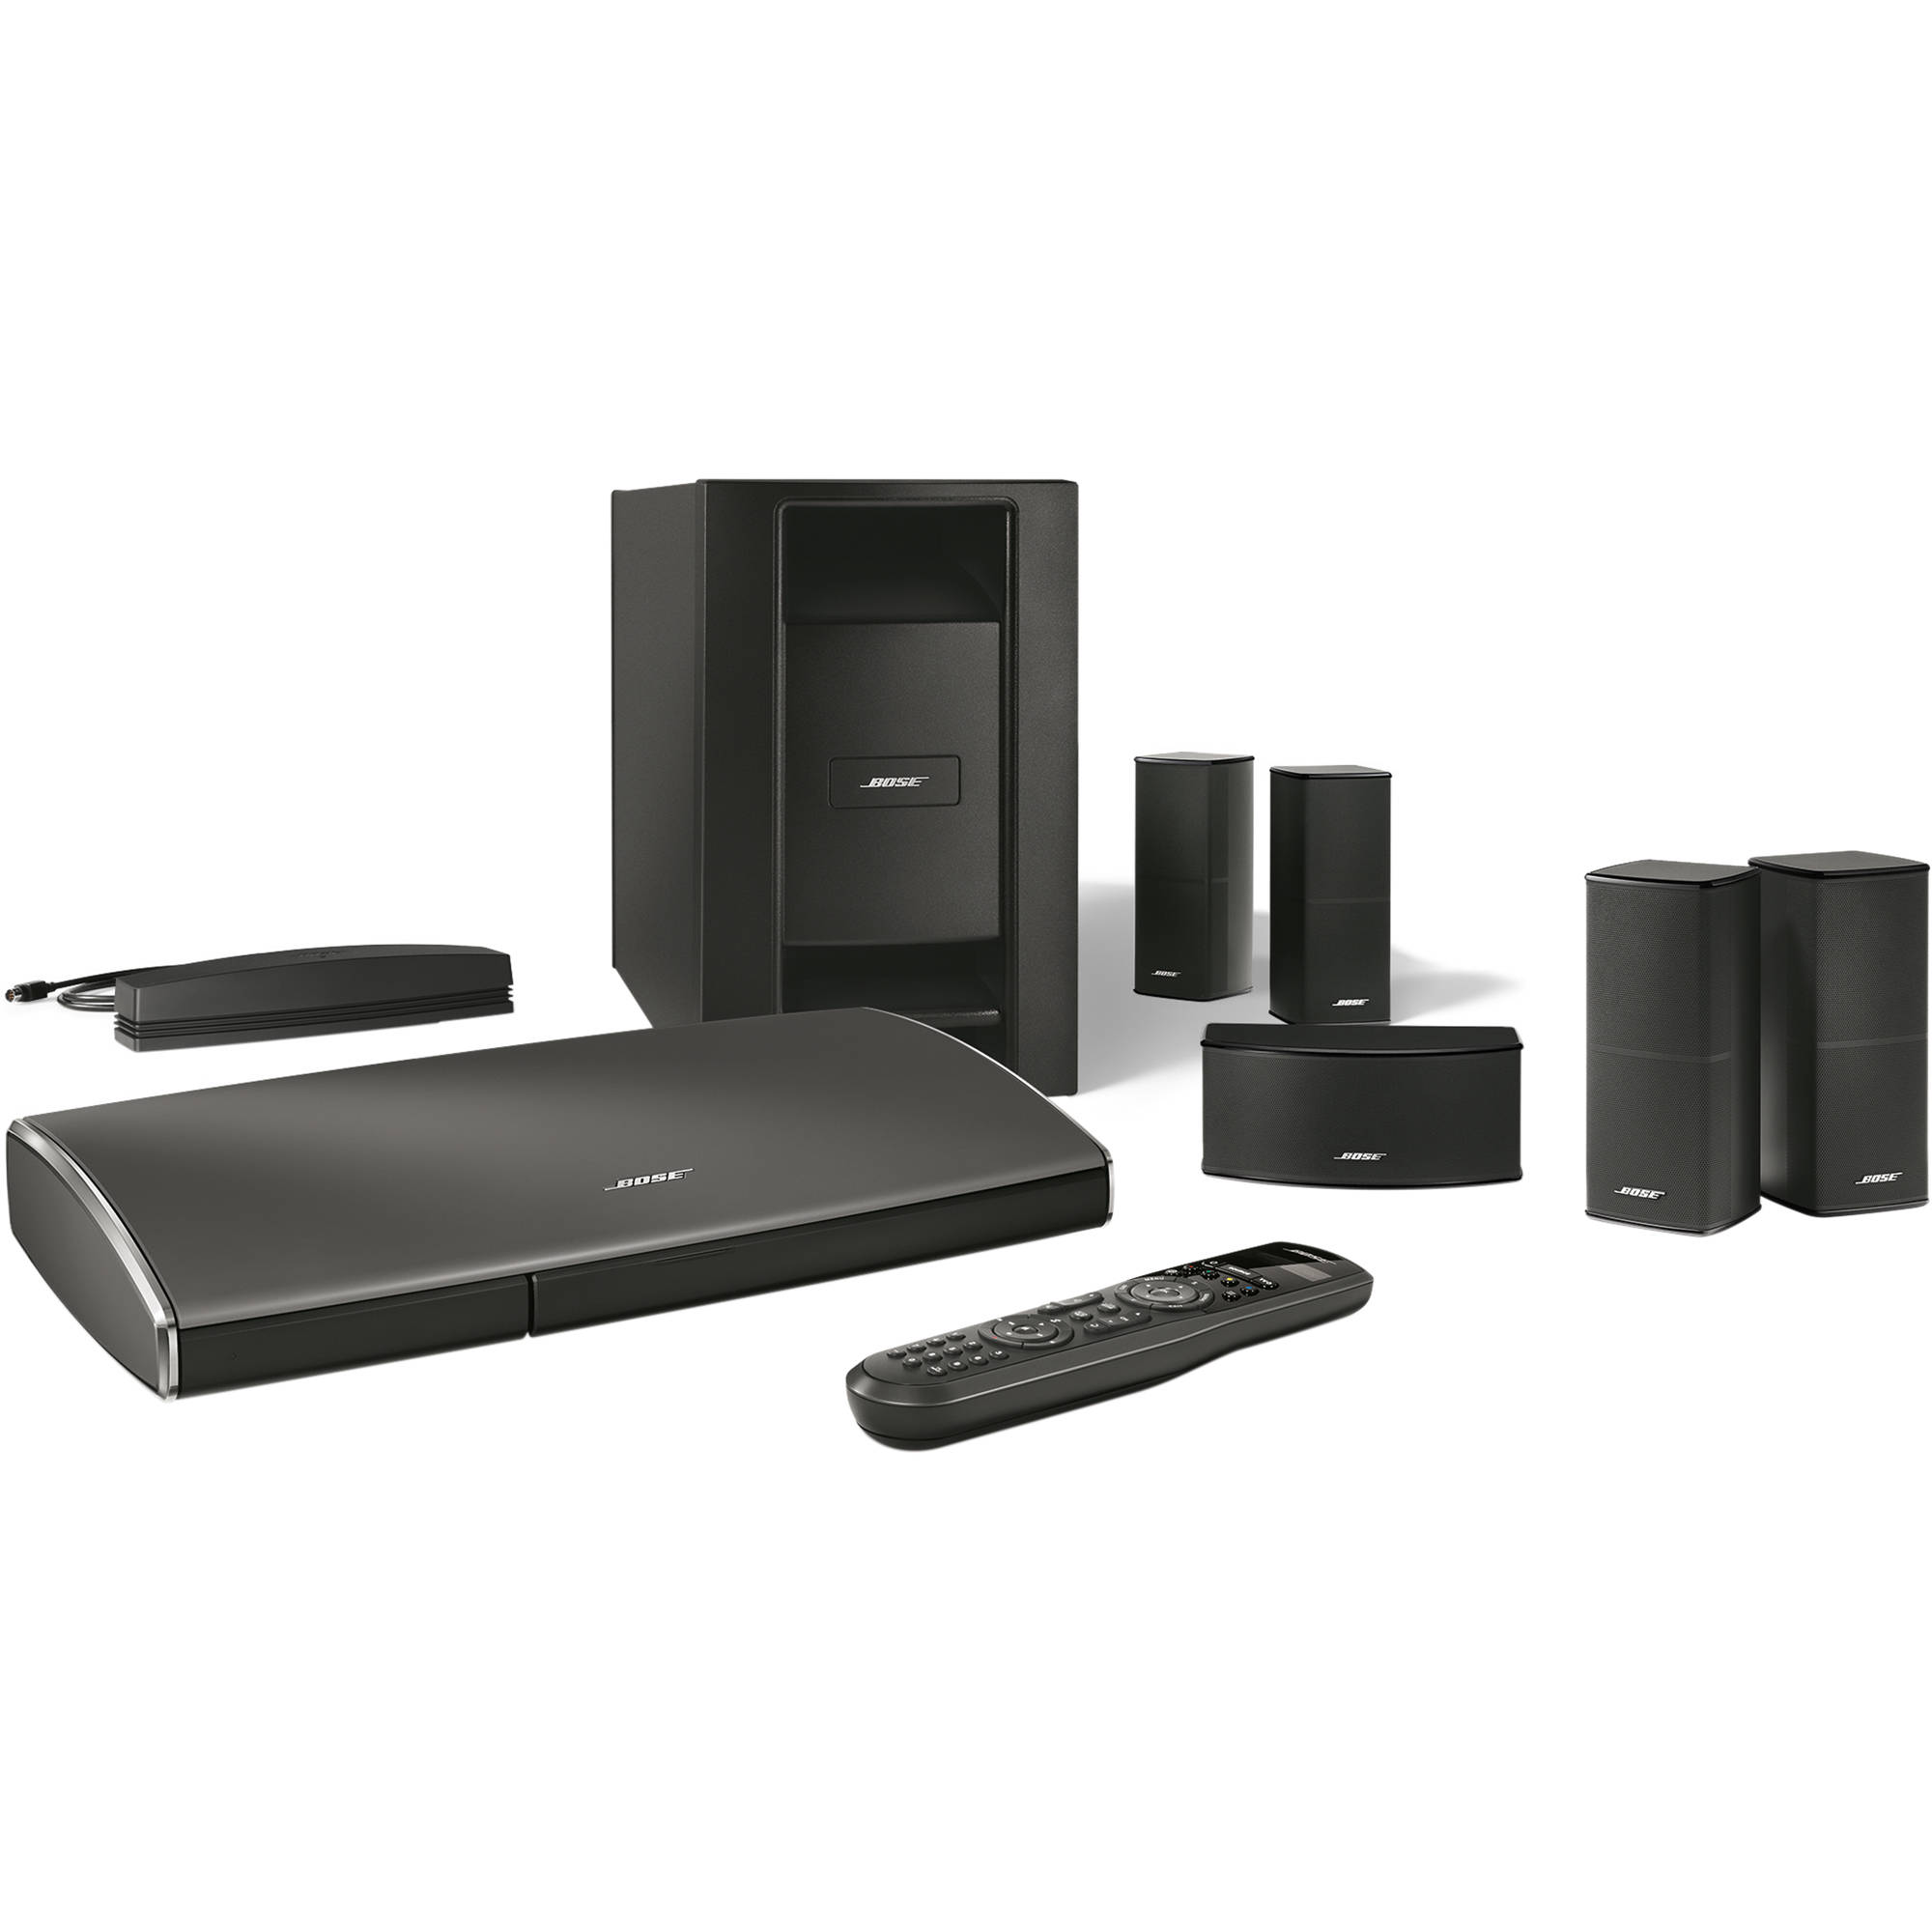 Bose lifestyle soundtouch 535 entertainment system 738516 1100 for Lift style